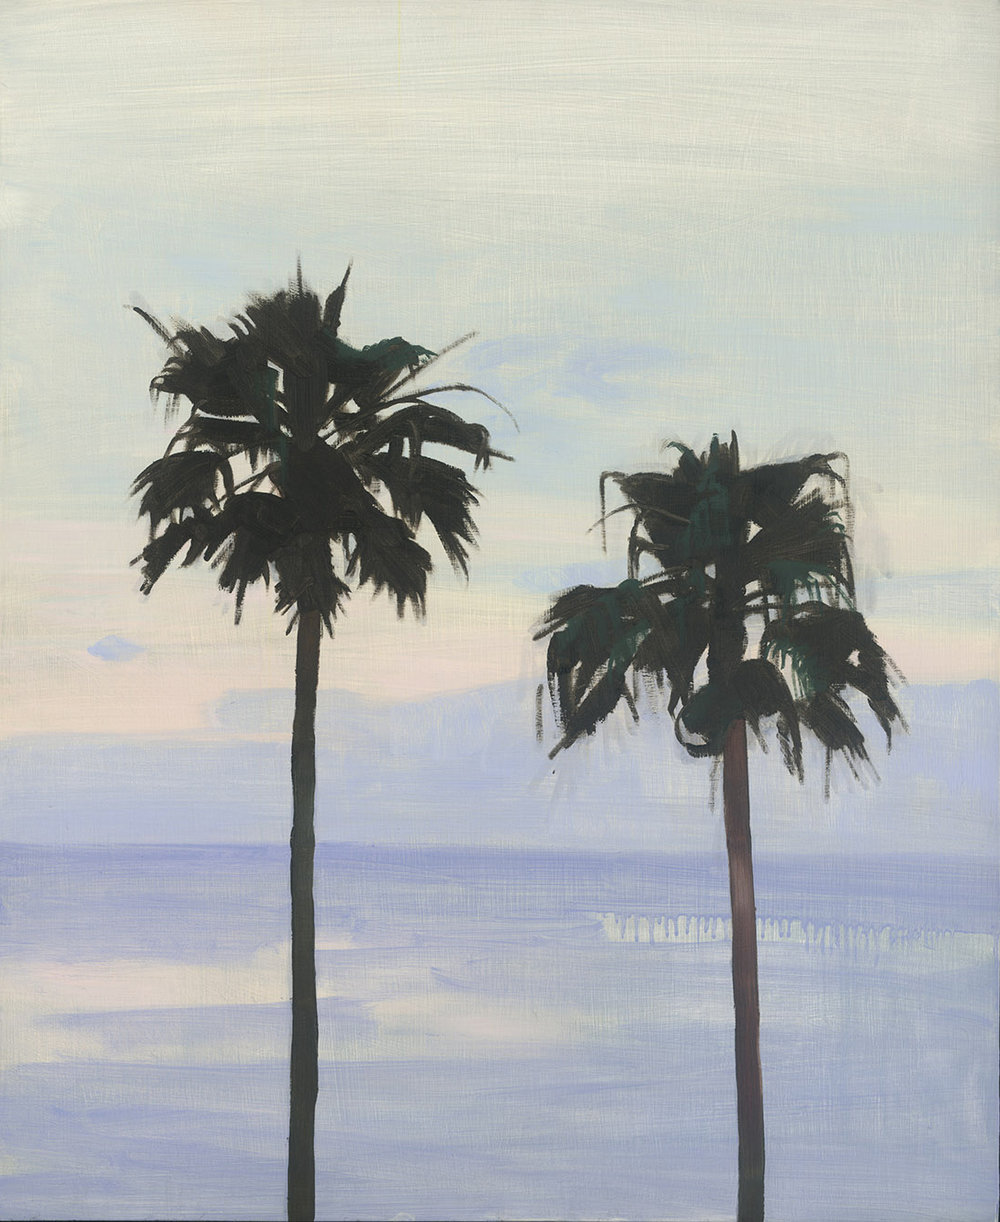 Two Palms at Dusk, oil on board, 72 x 59 cm (sold)